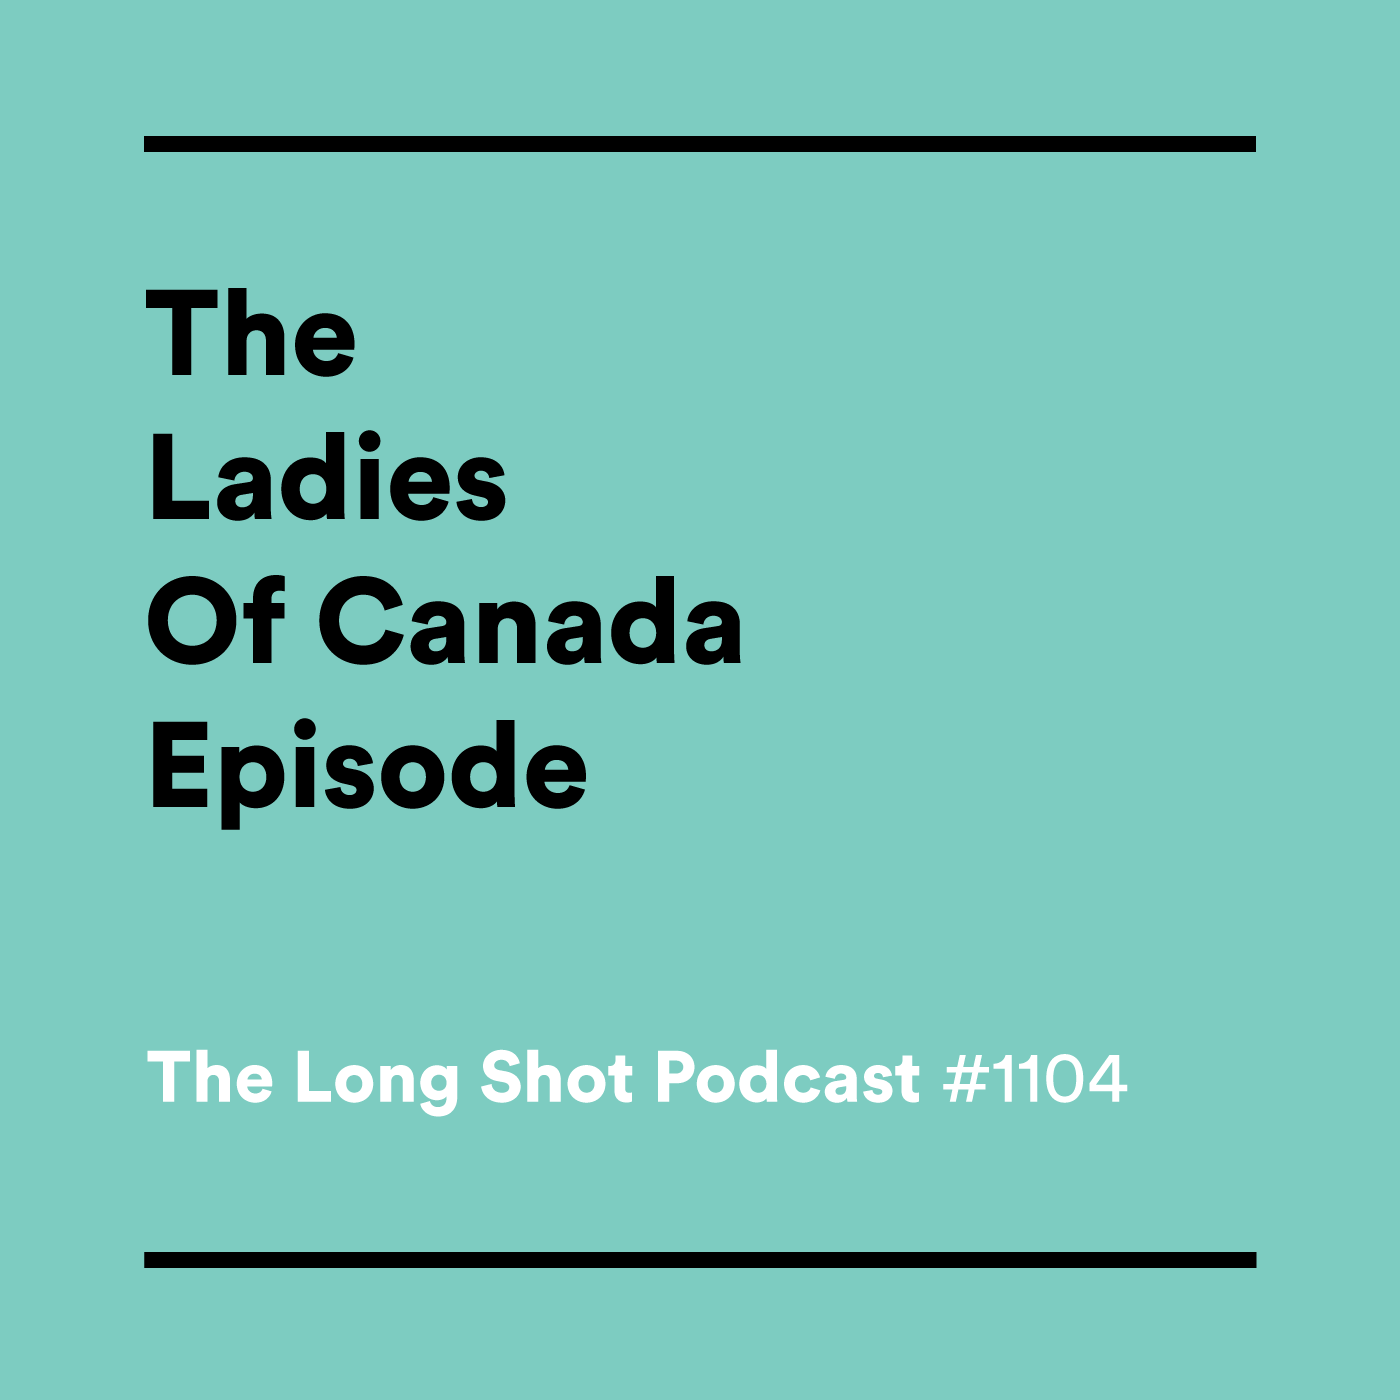 #1104 The Ladies of Canada Episode